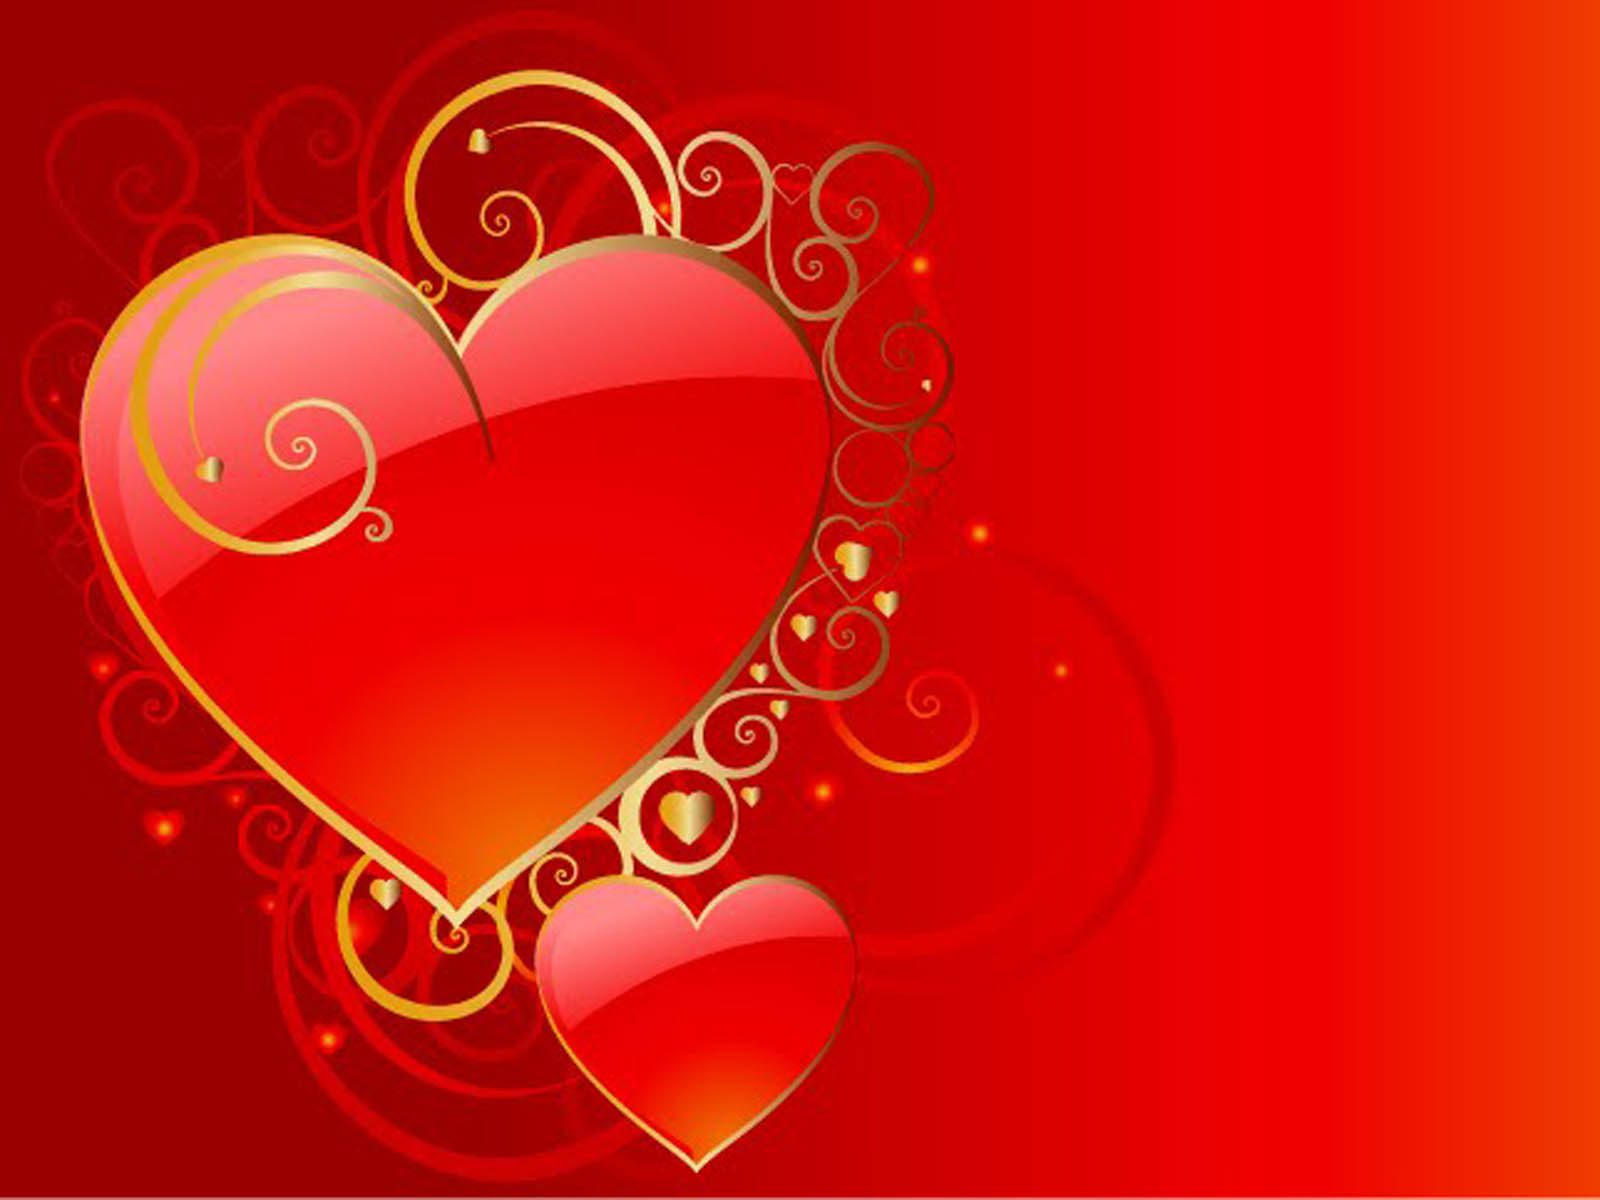 Love Wallpaper For Desktop Best : wallpapers: Love Heart Wallpapers